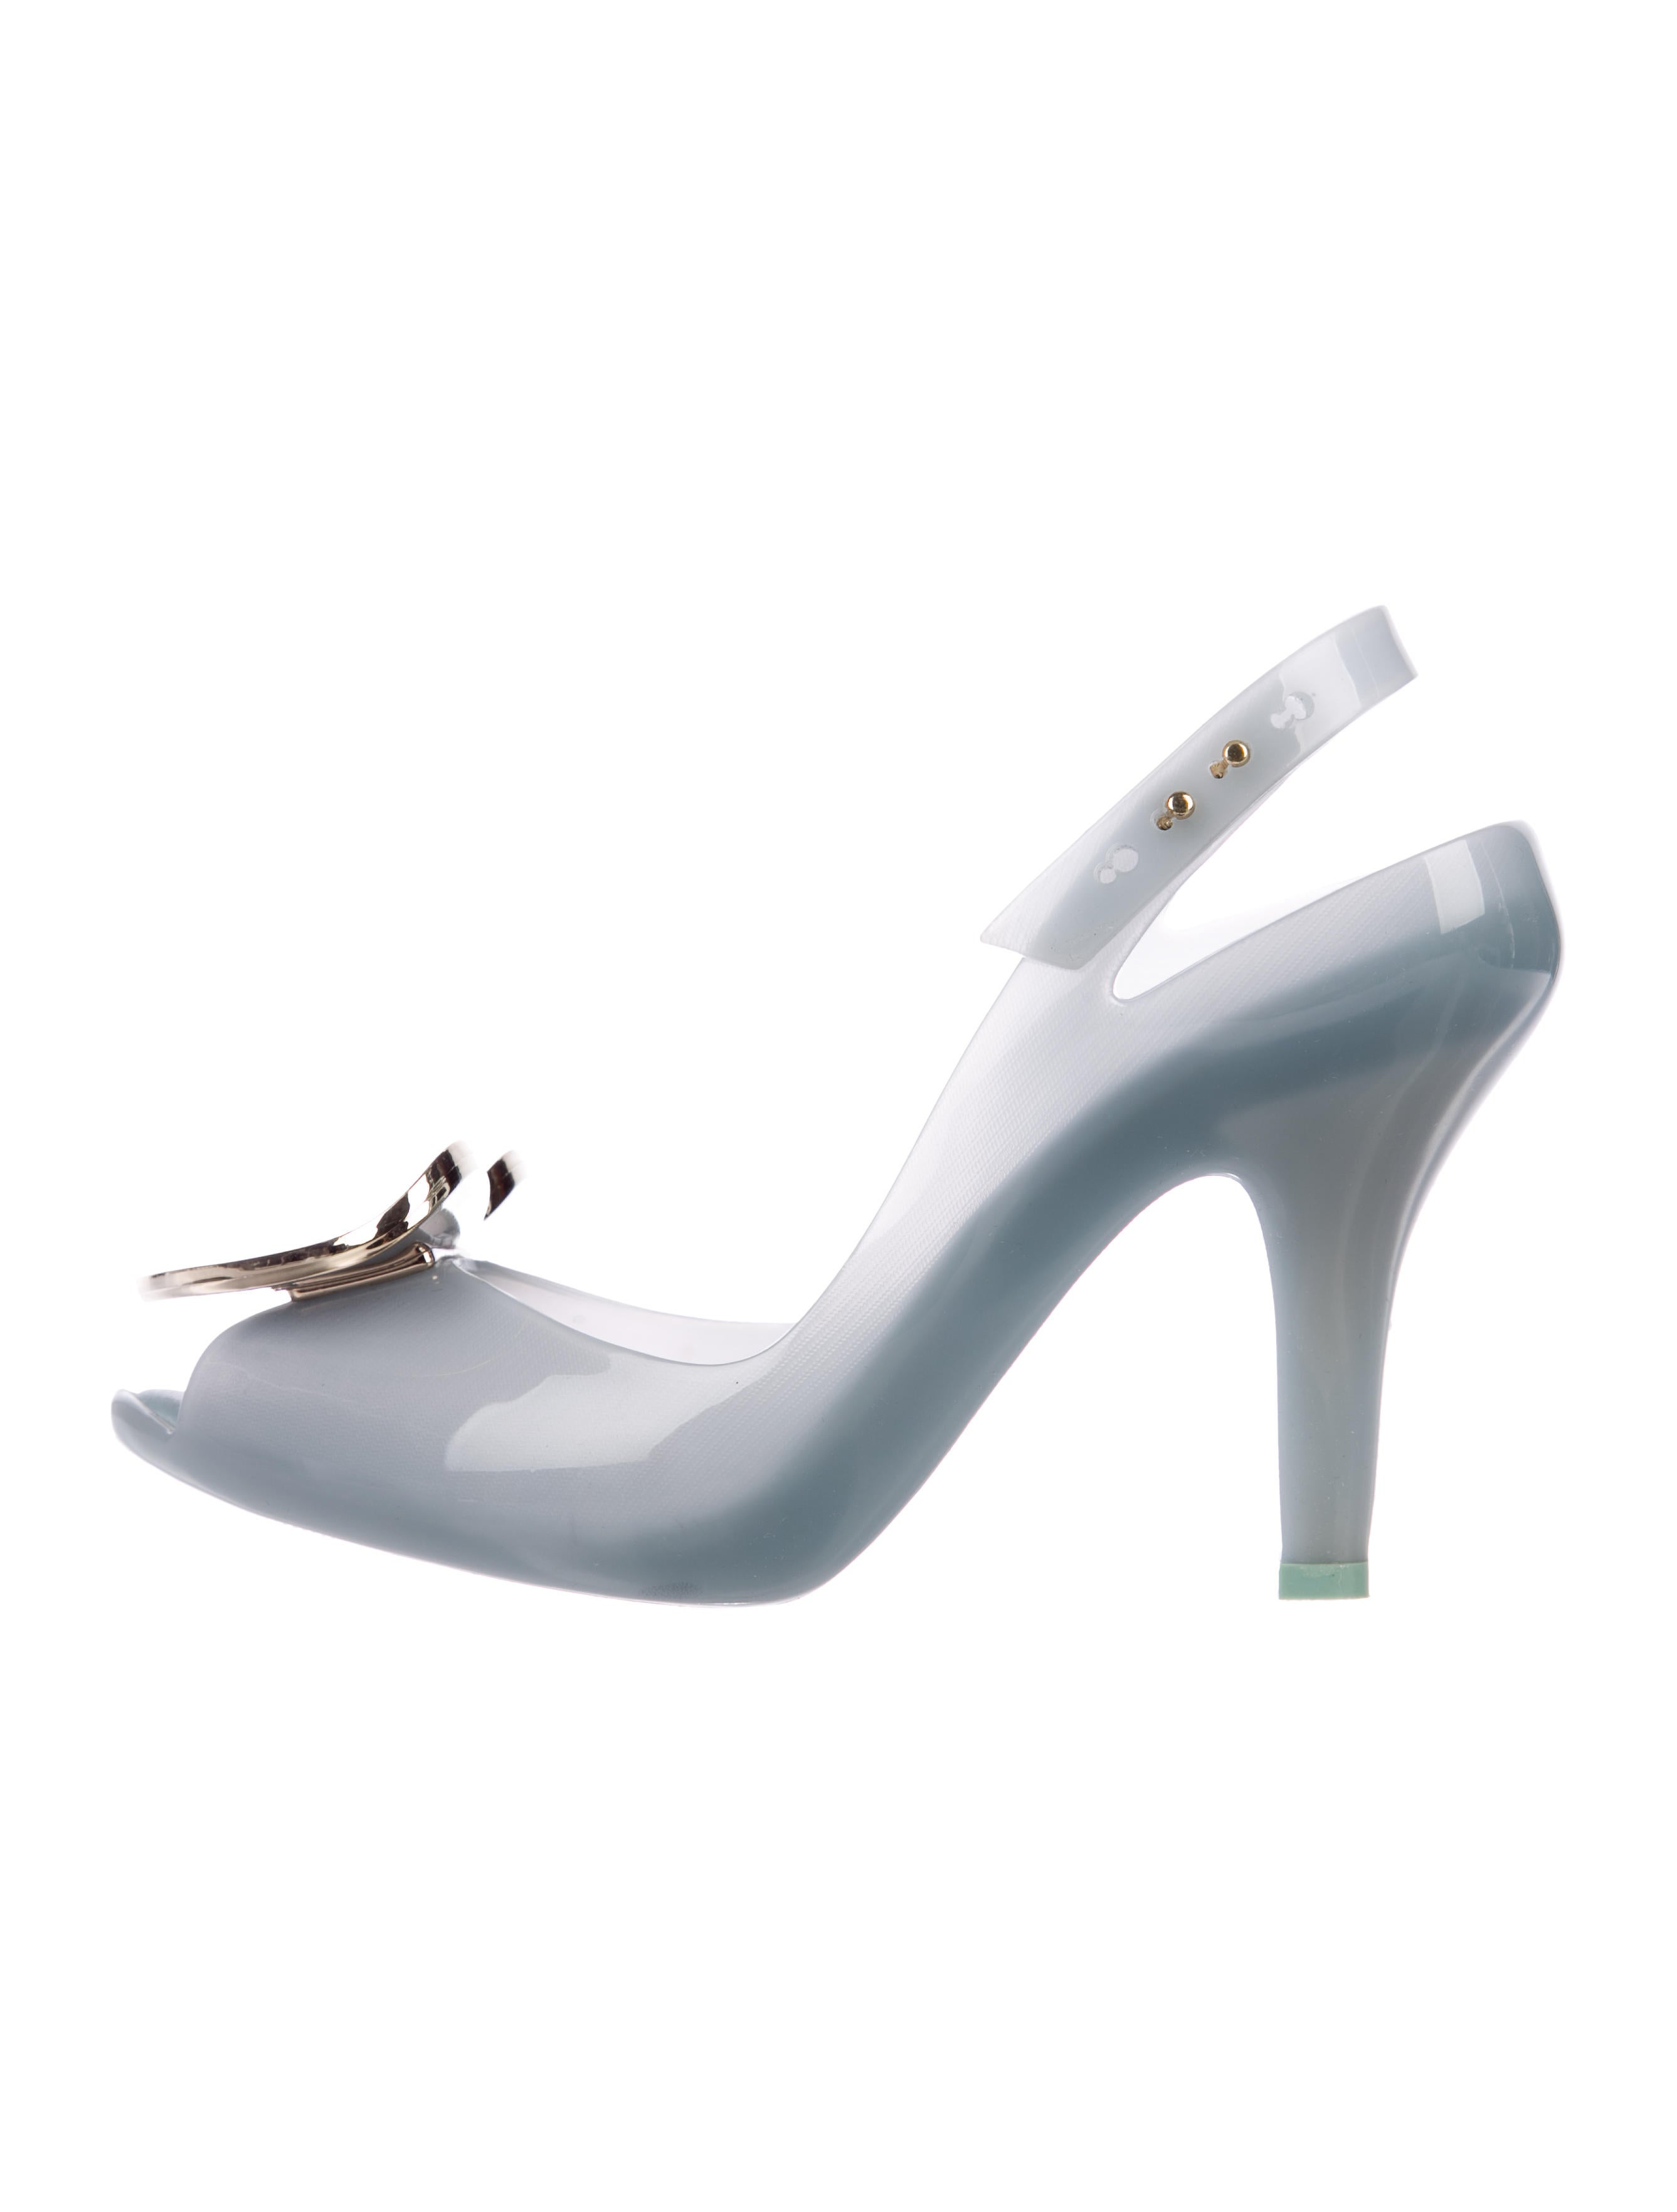 Vivienne Westwood Anglomania Peep-Toe Slingback Pumps outlet 2014 unisex countdown package online official rwWgmEu